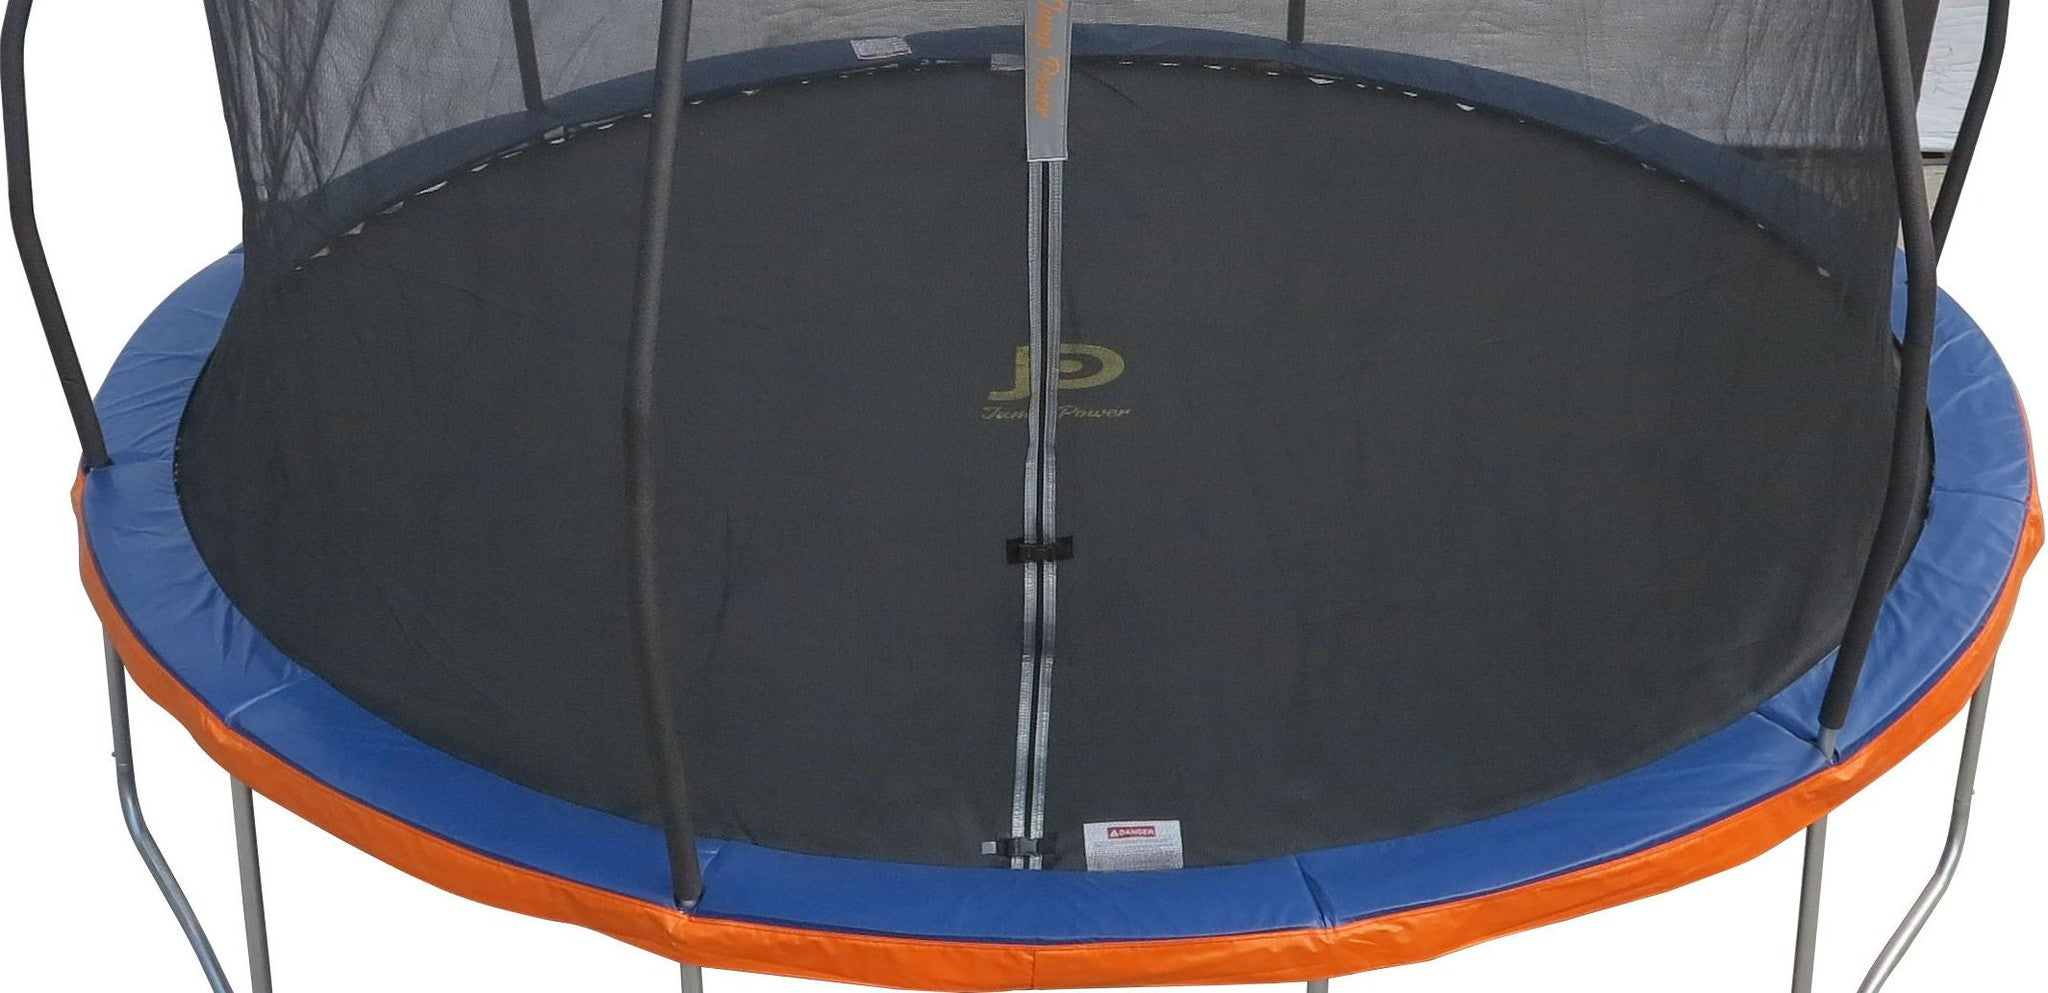 Trampoline Safety Pad Spring Cover Fits 14 Feet Round 10